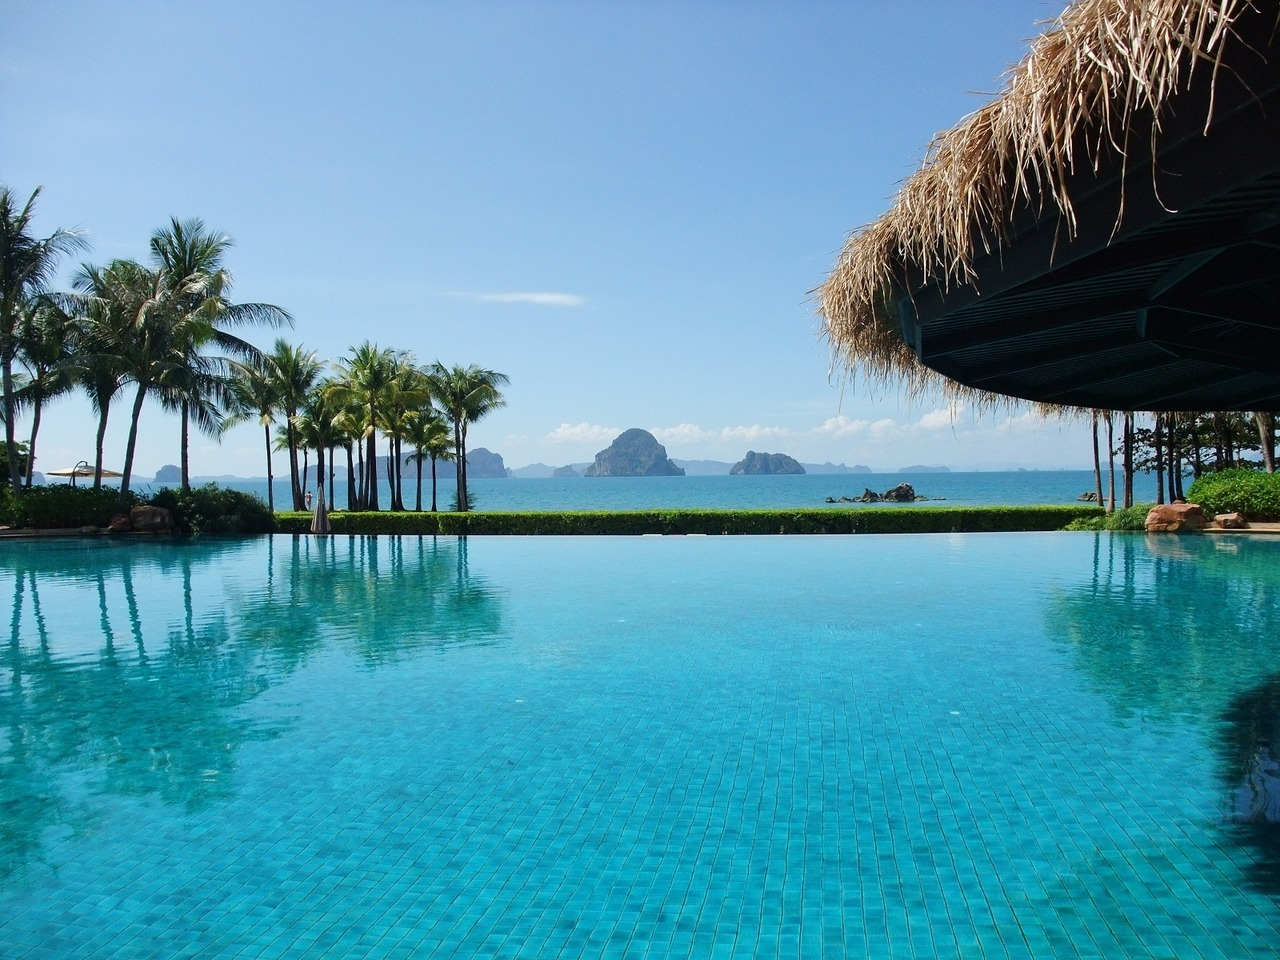 'The Hangover 2′ Resort- Phulay Bay Ritz Carlton, Krabi, Thailand